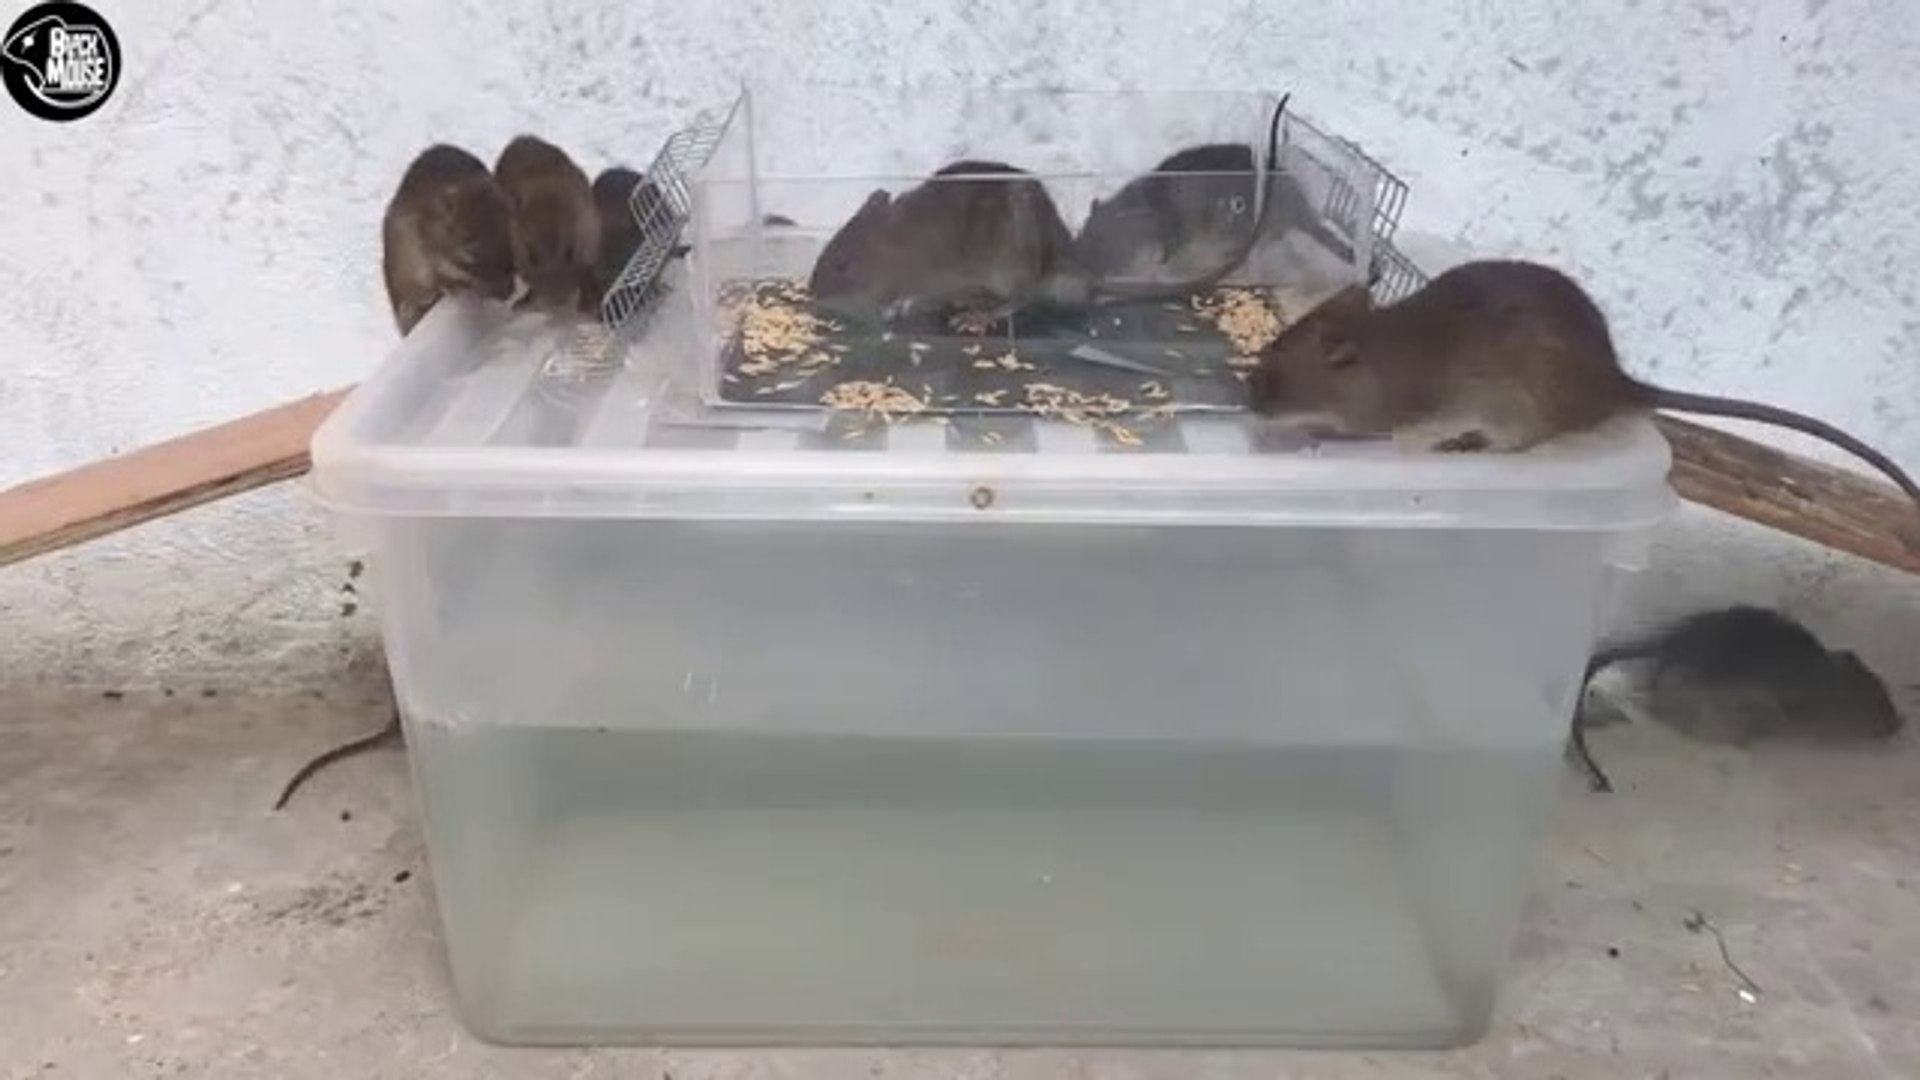 Rat Trap Water  7 Mice in trapped  Mouse_ Rat trap  Easy make a Best Rat Trap Handmade